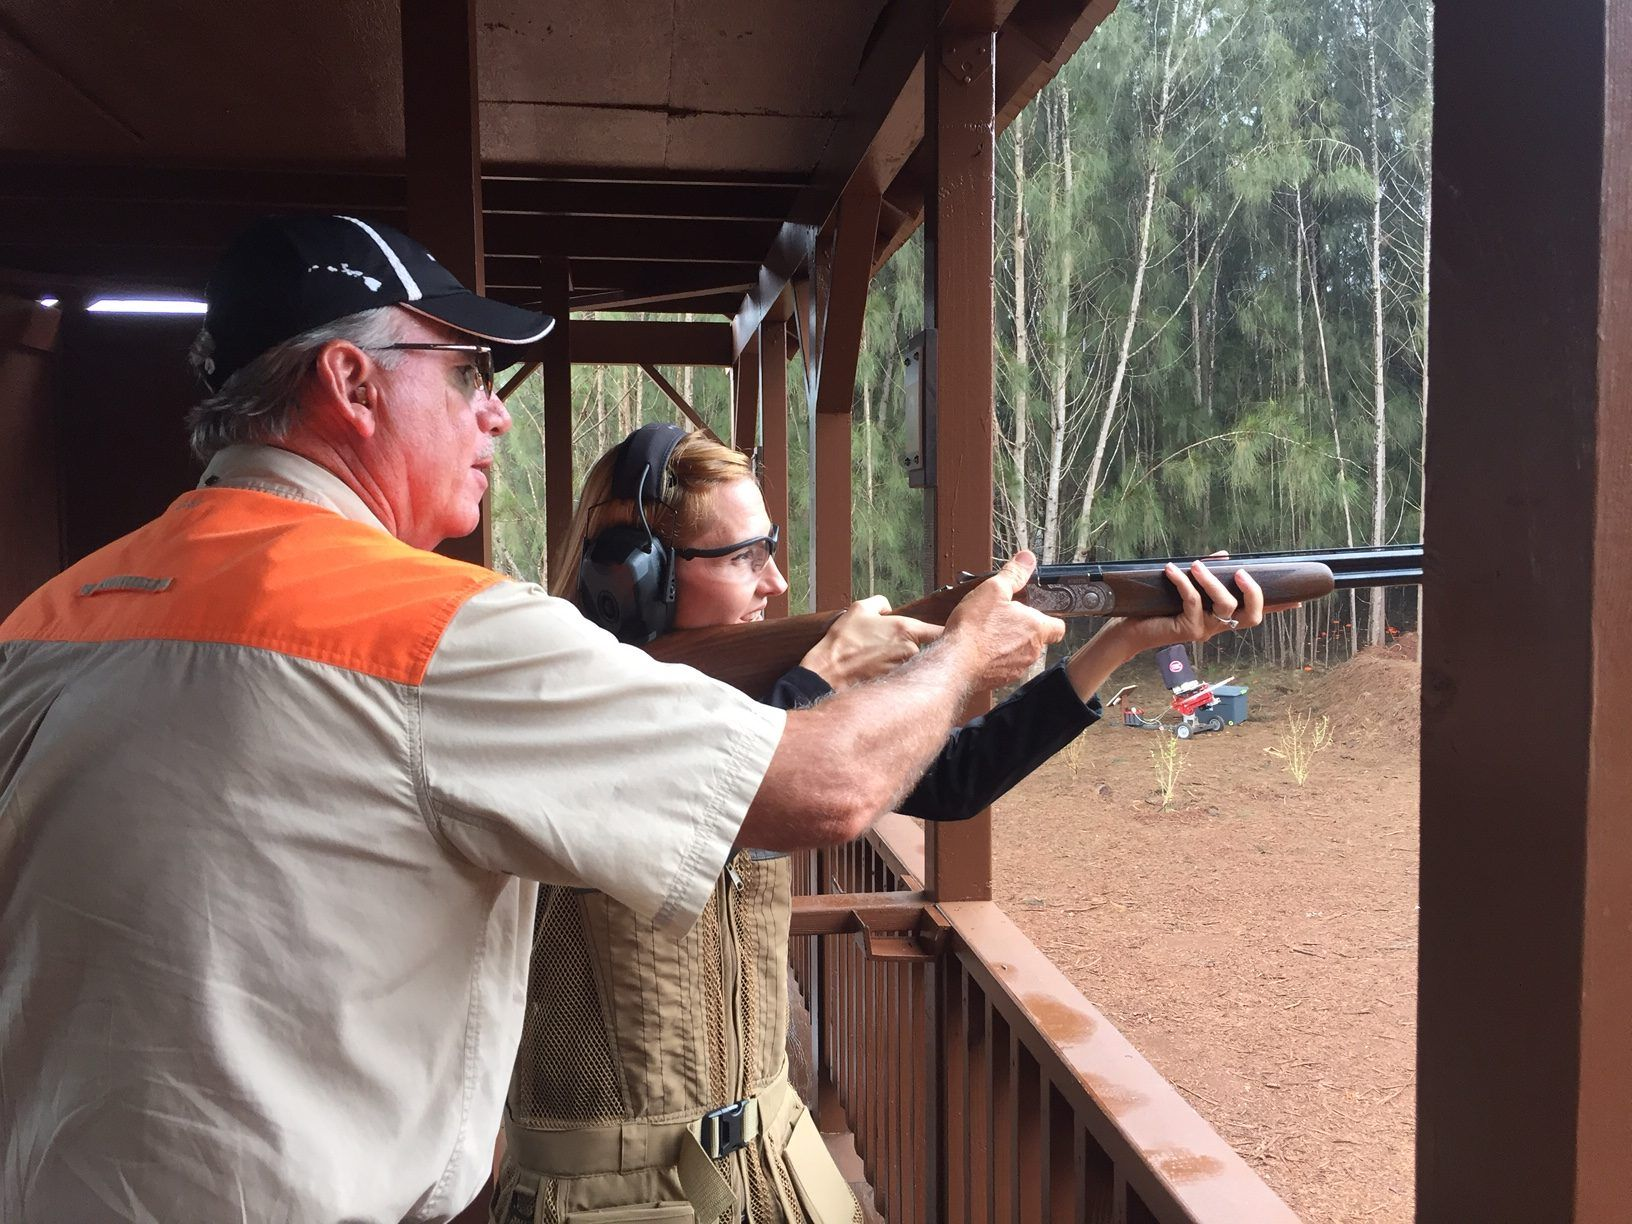 BULLSEYE Lanai Archery and Sporting Clays Hit the Spot